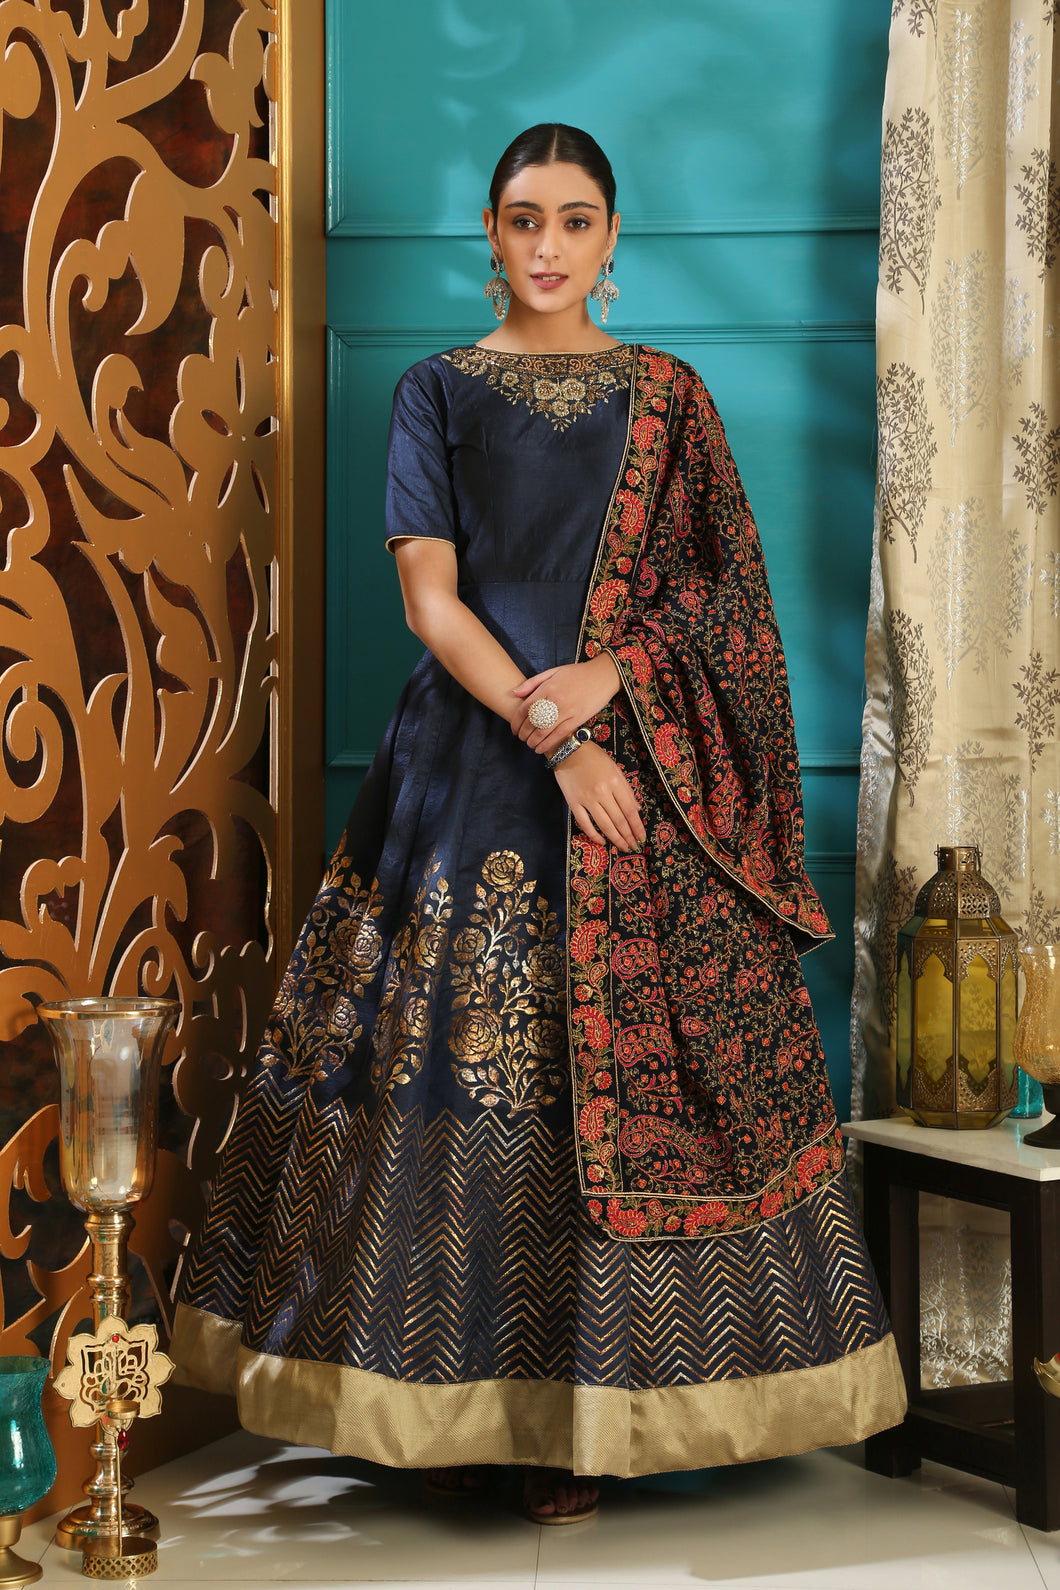 Moderately Navy Blue Silk Metalic Foil & Cutdana Hand Work With Divine Fairly Long Gown